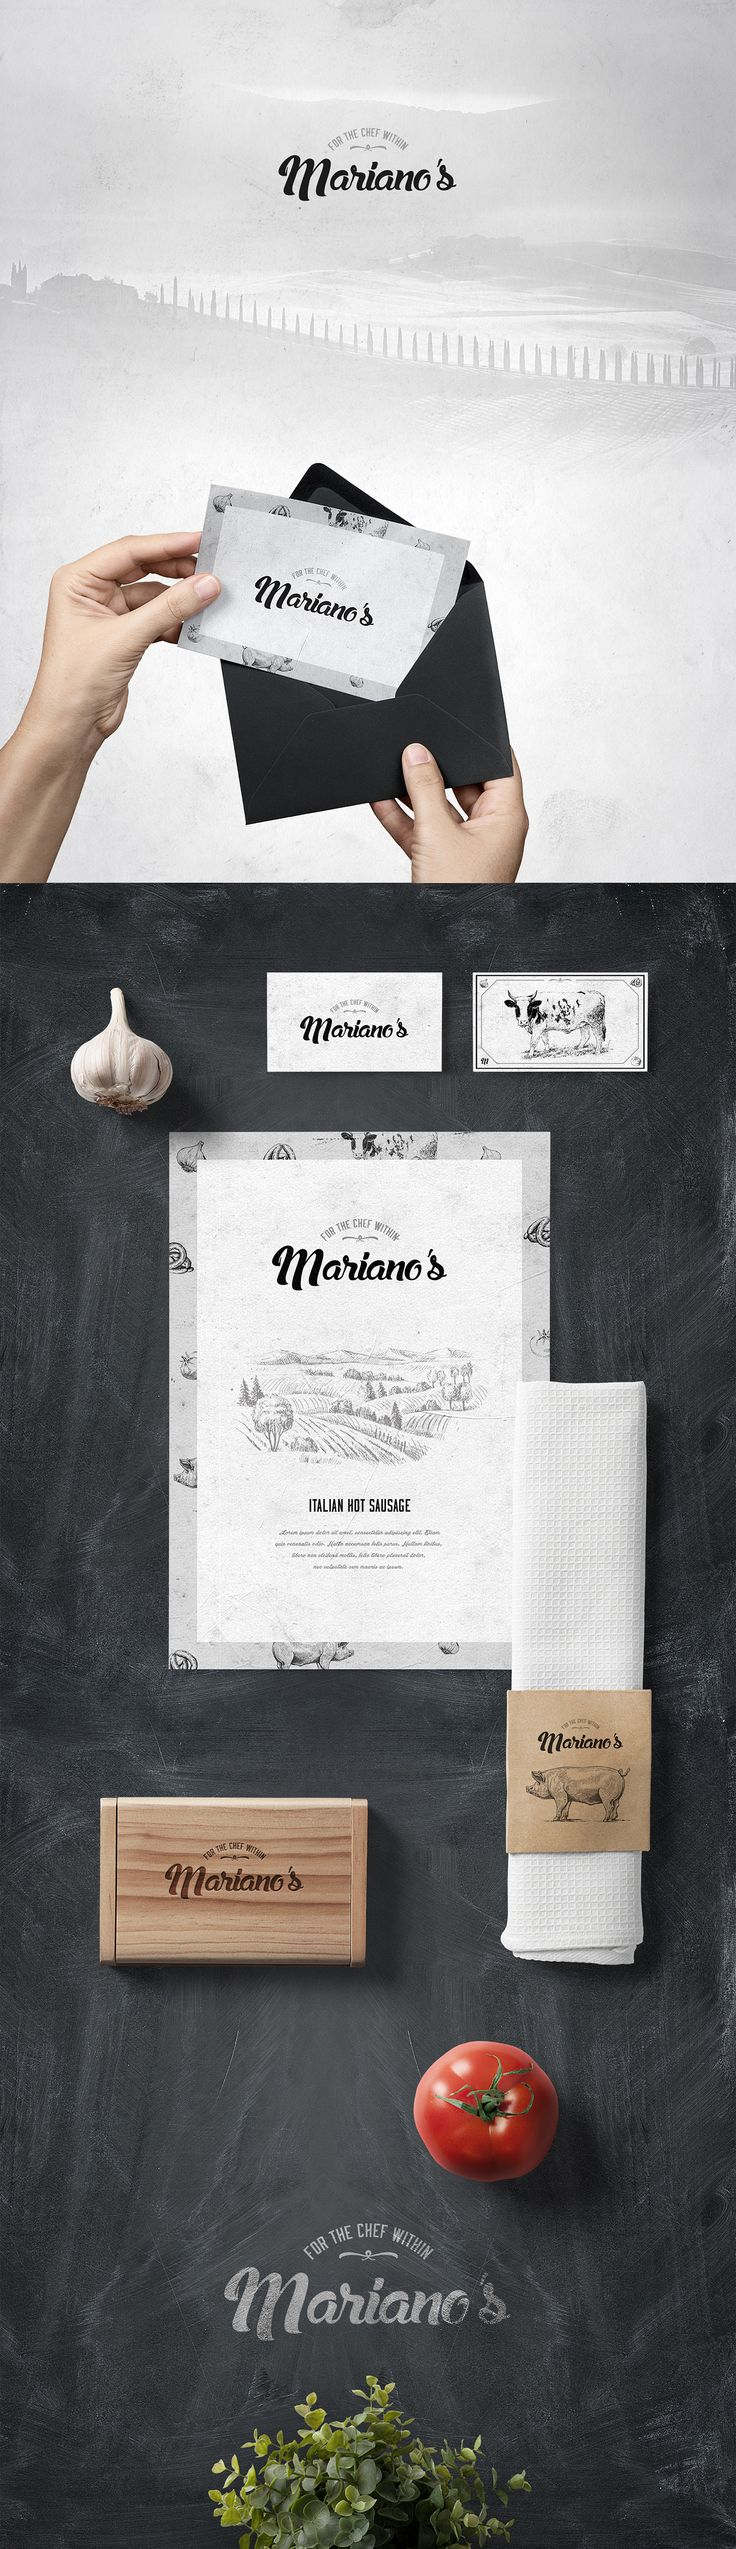 Mariano's Brand Meats on Behance